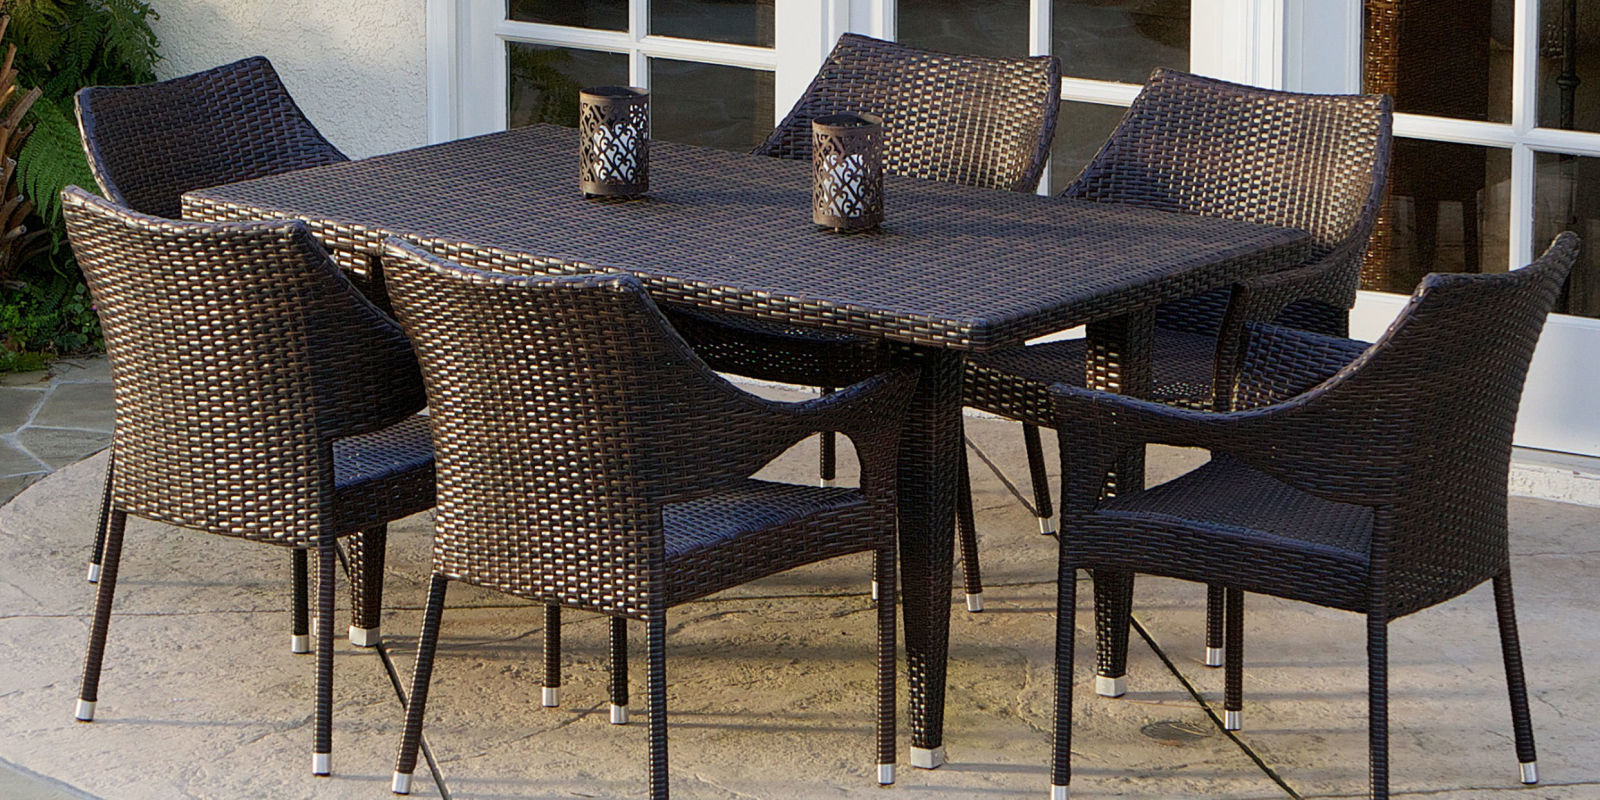 11 Best Patio Dining Sets For Summer